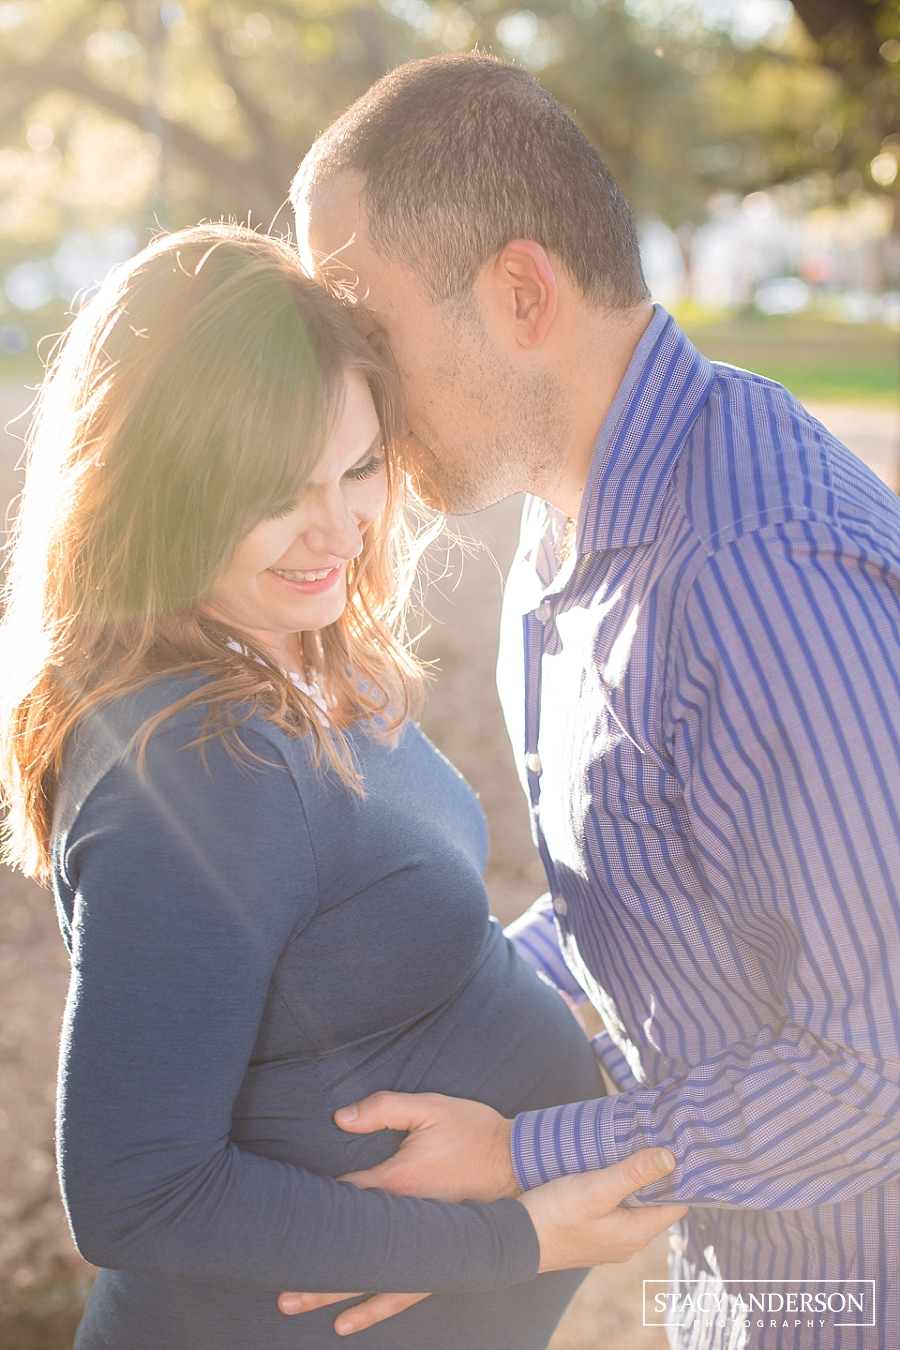 Stacy Anderson Photography Houston Maternity Photographer_1185